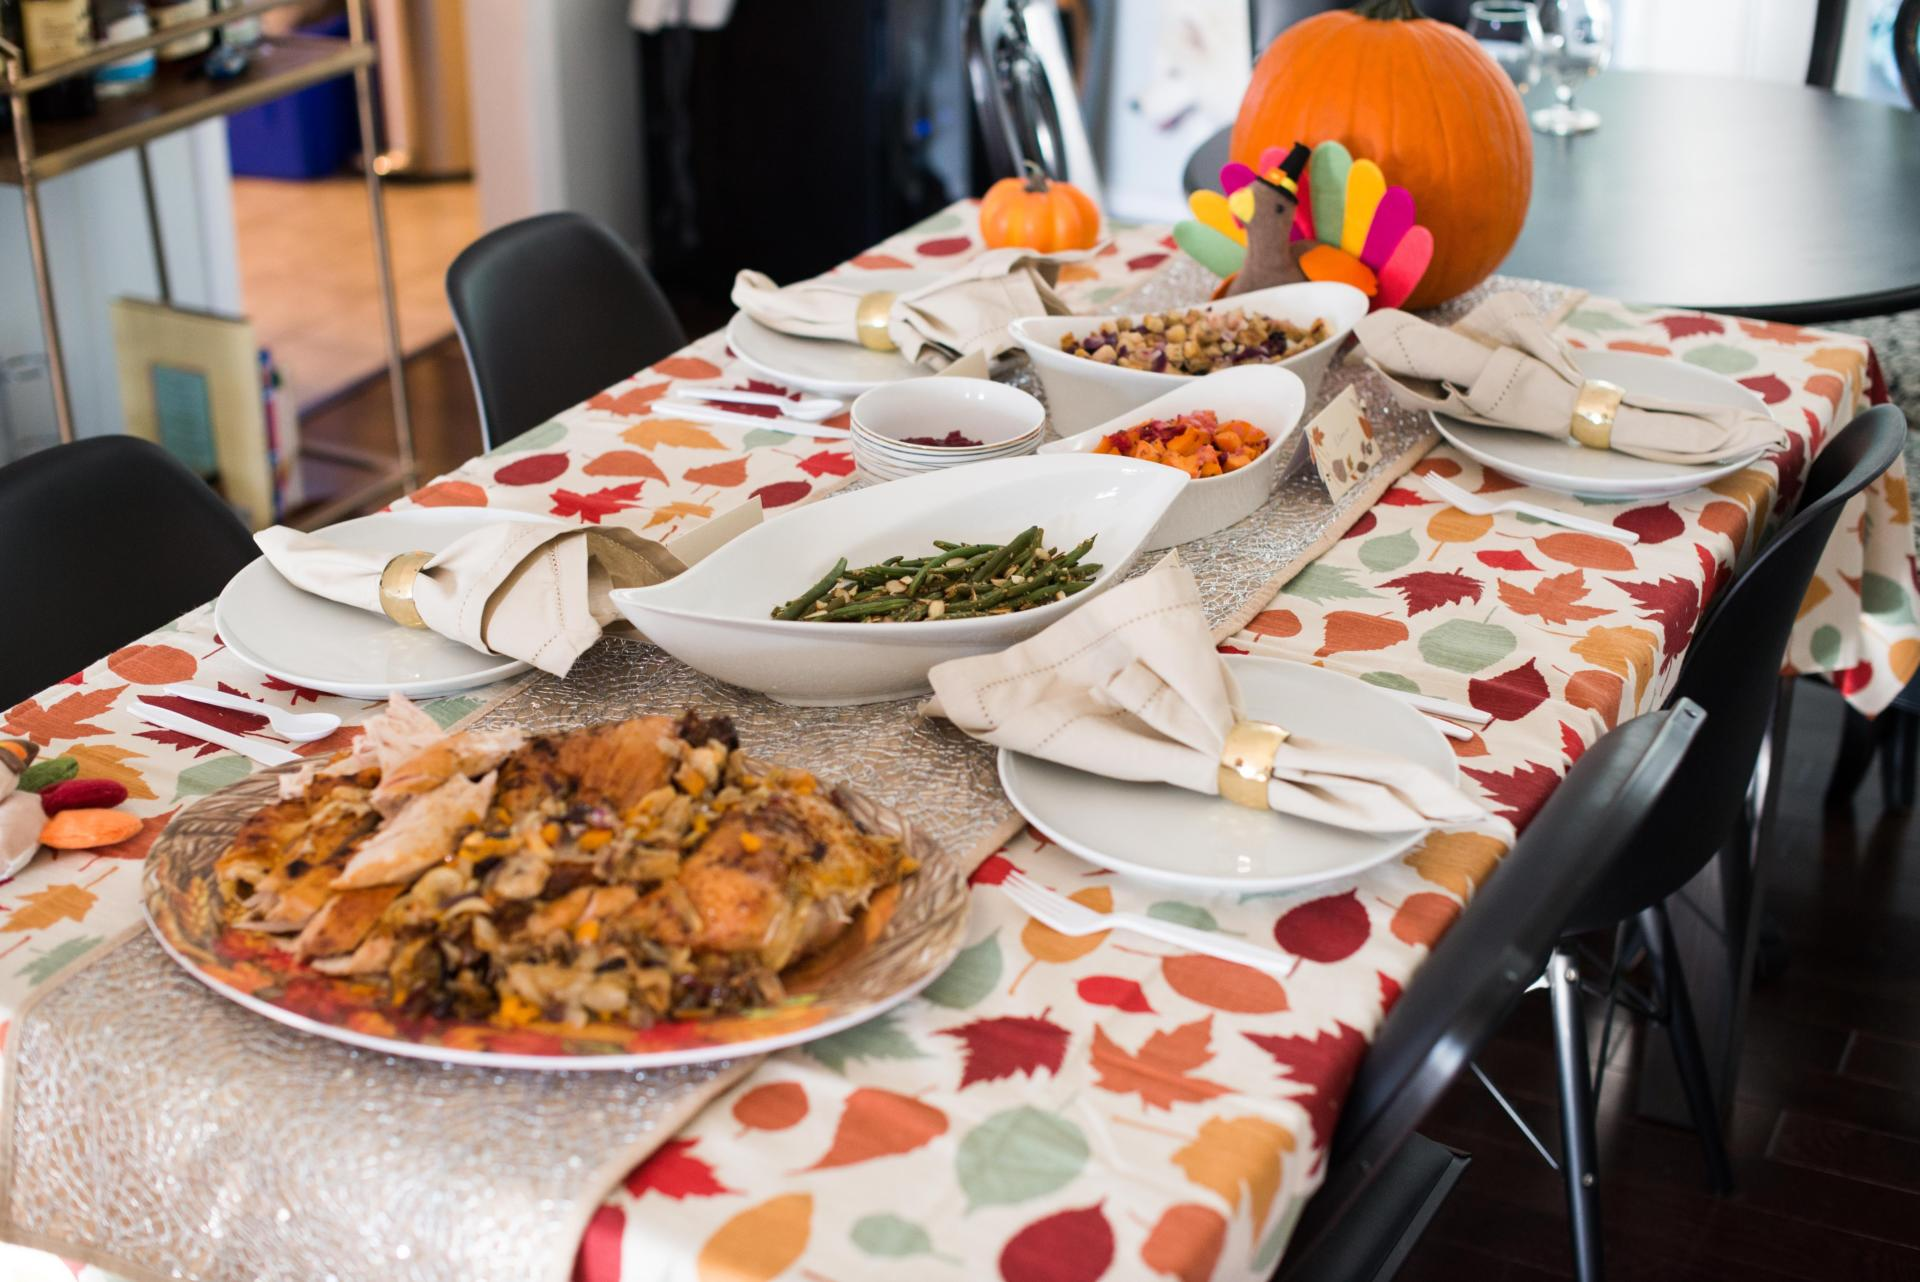 CELEBRATE: Friendsgiving and a Roasted Spatchcock Turkey by New Jersey foodie blogger What's For Dinner Esq.